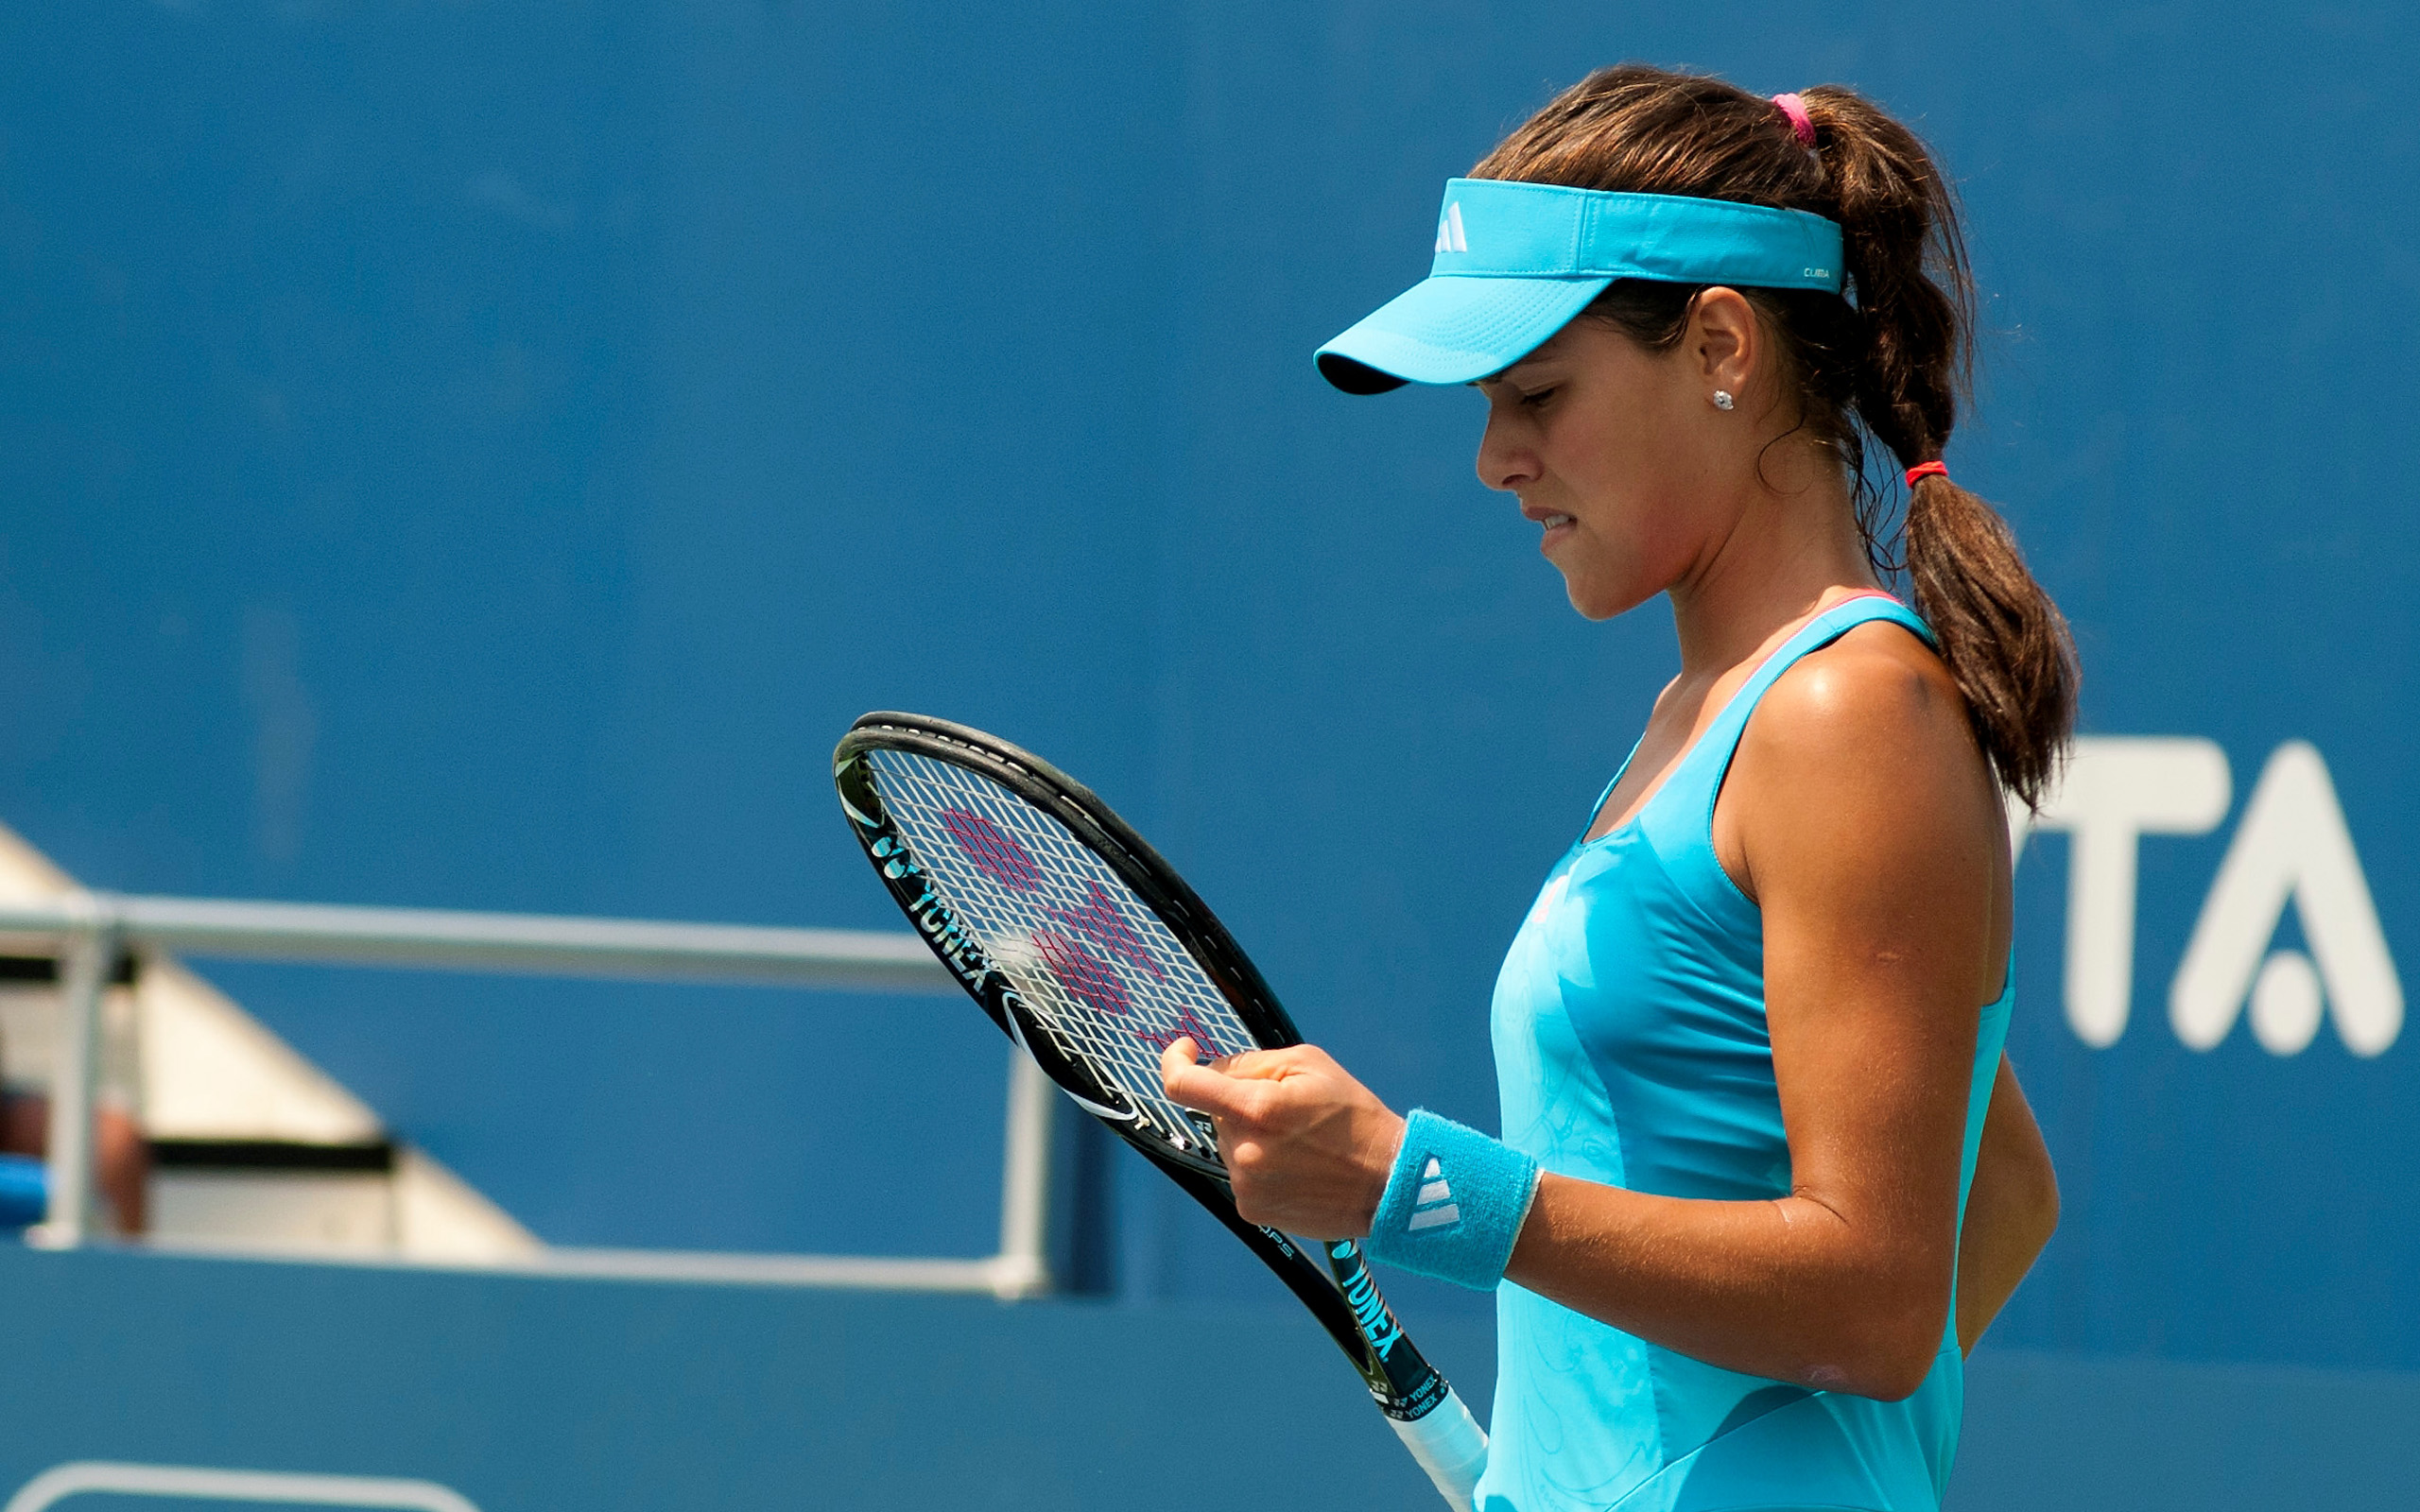 ana ivanovic wallpaper background 60149